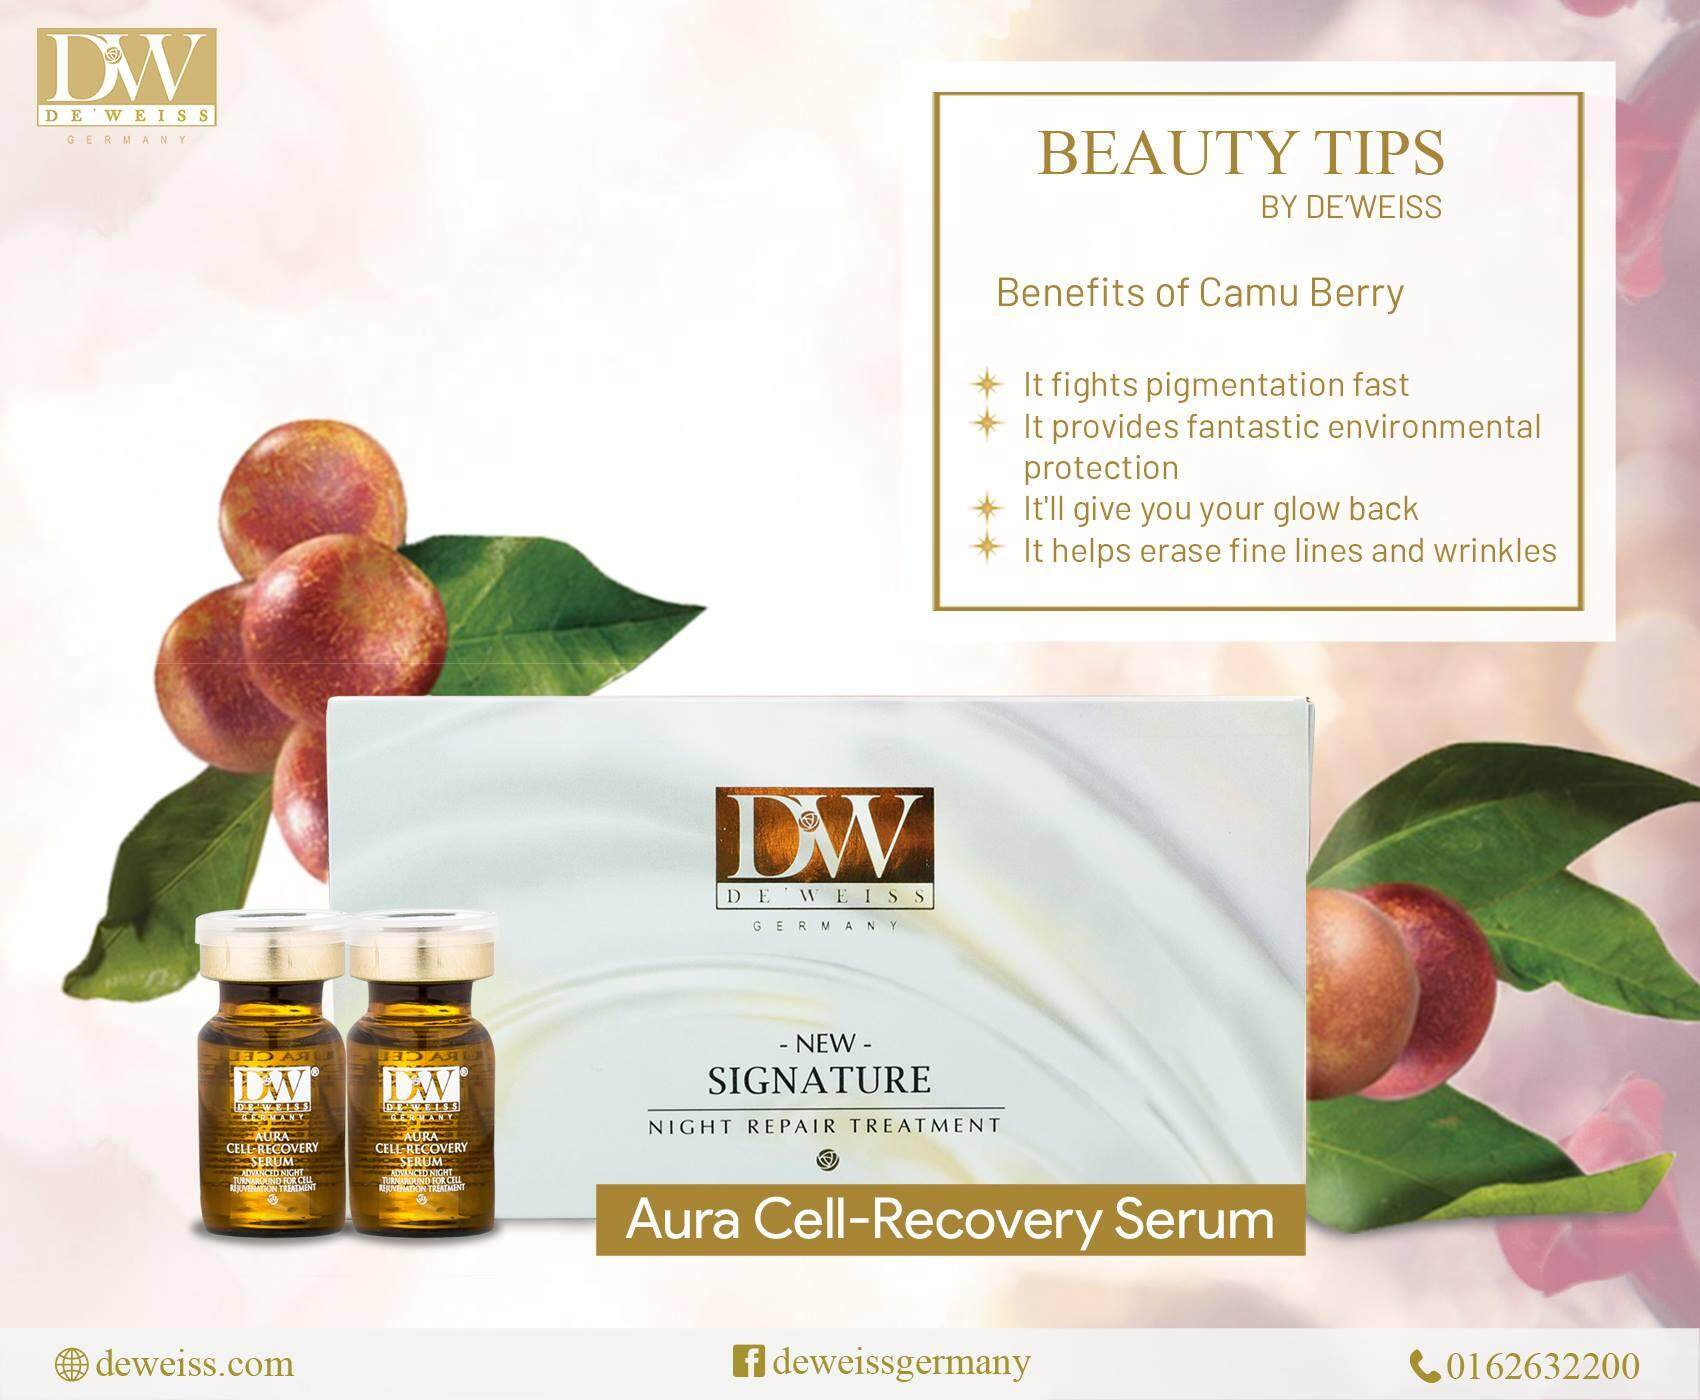 Deweiss Aura Cell-Recovery Serum